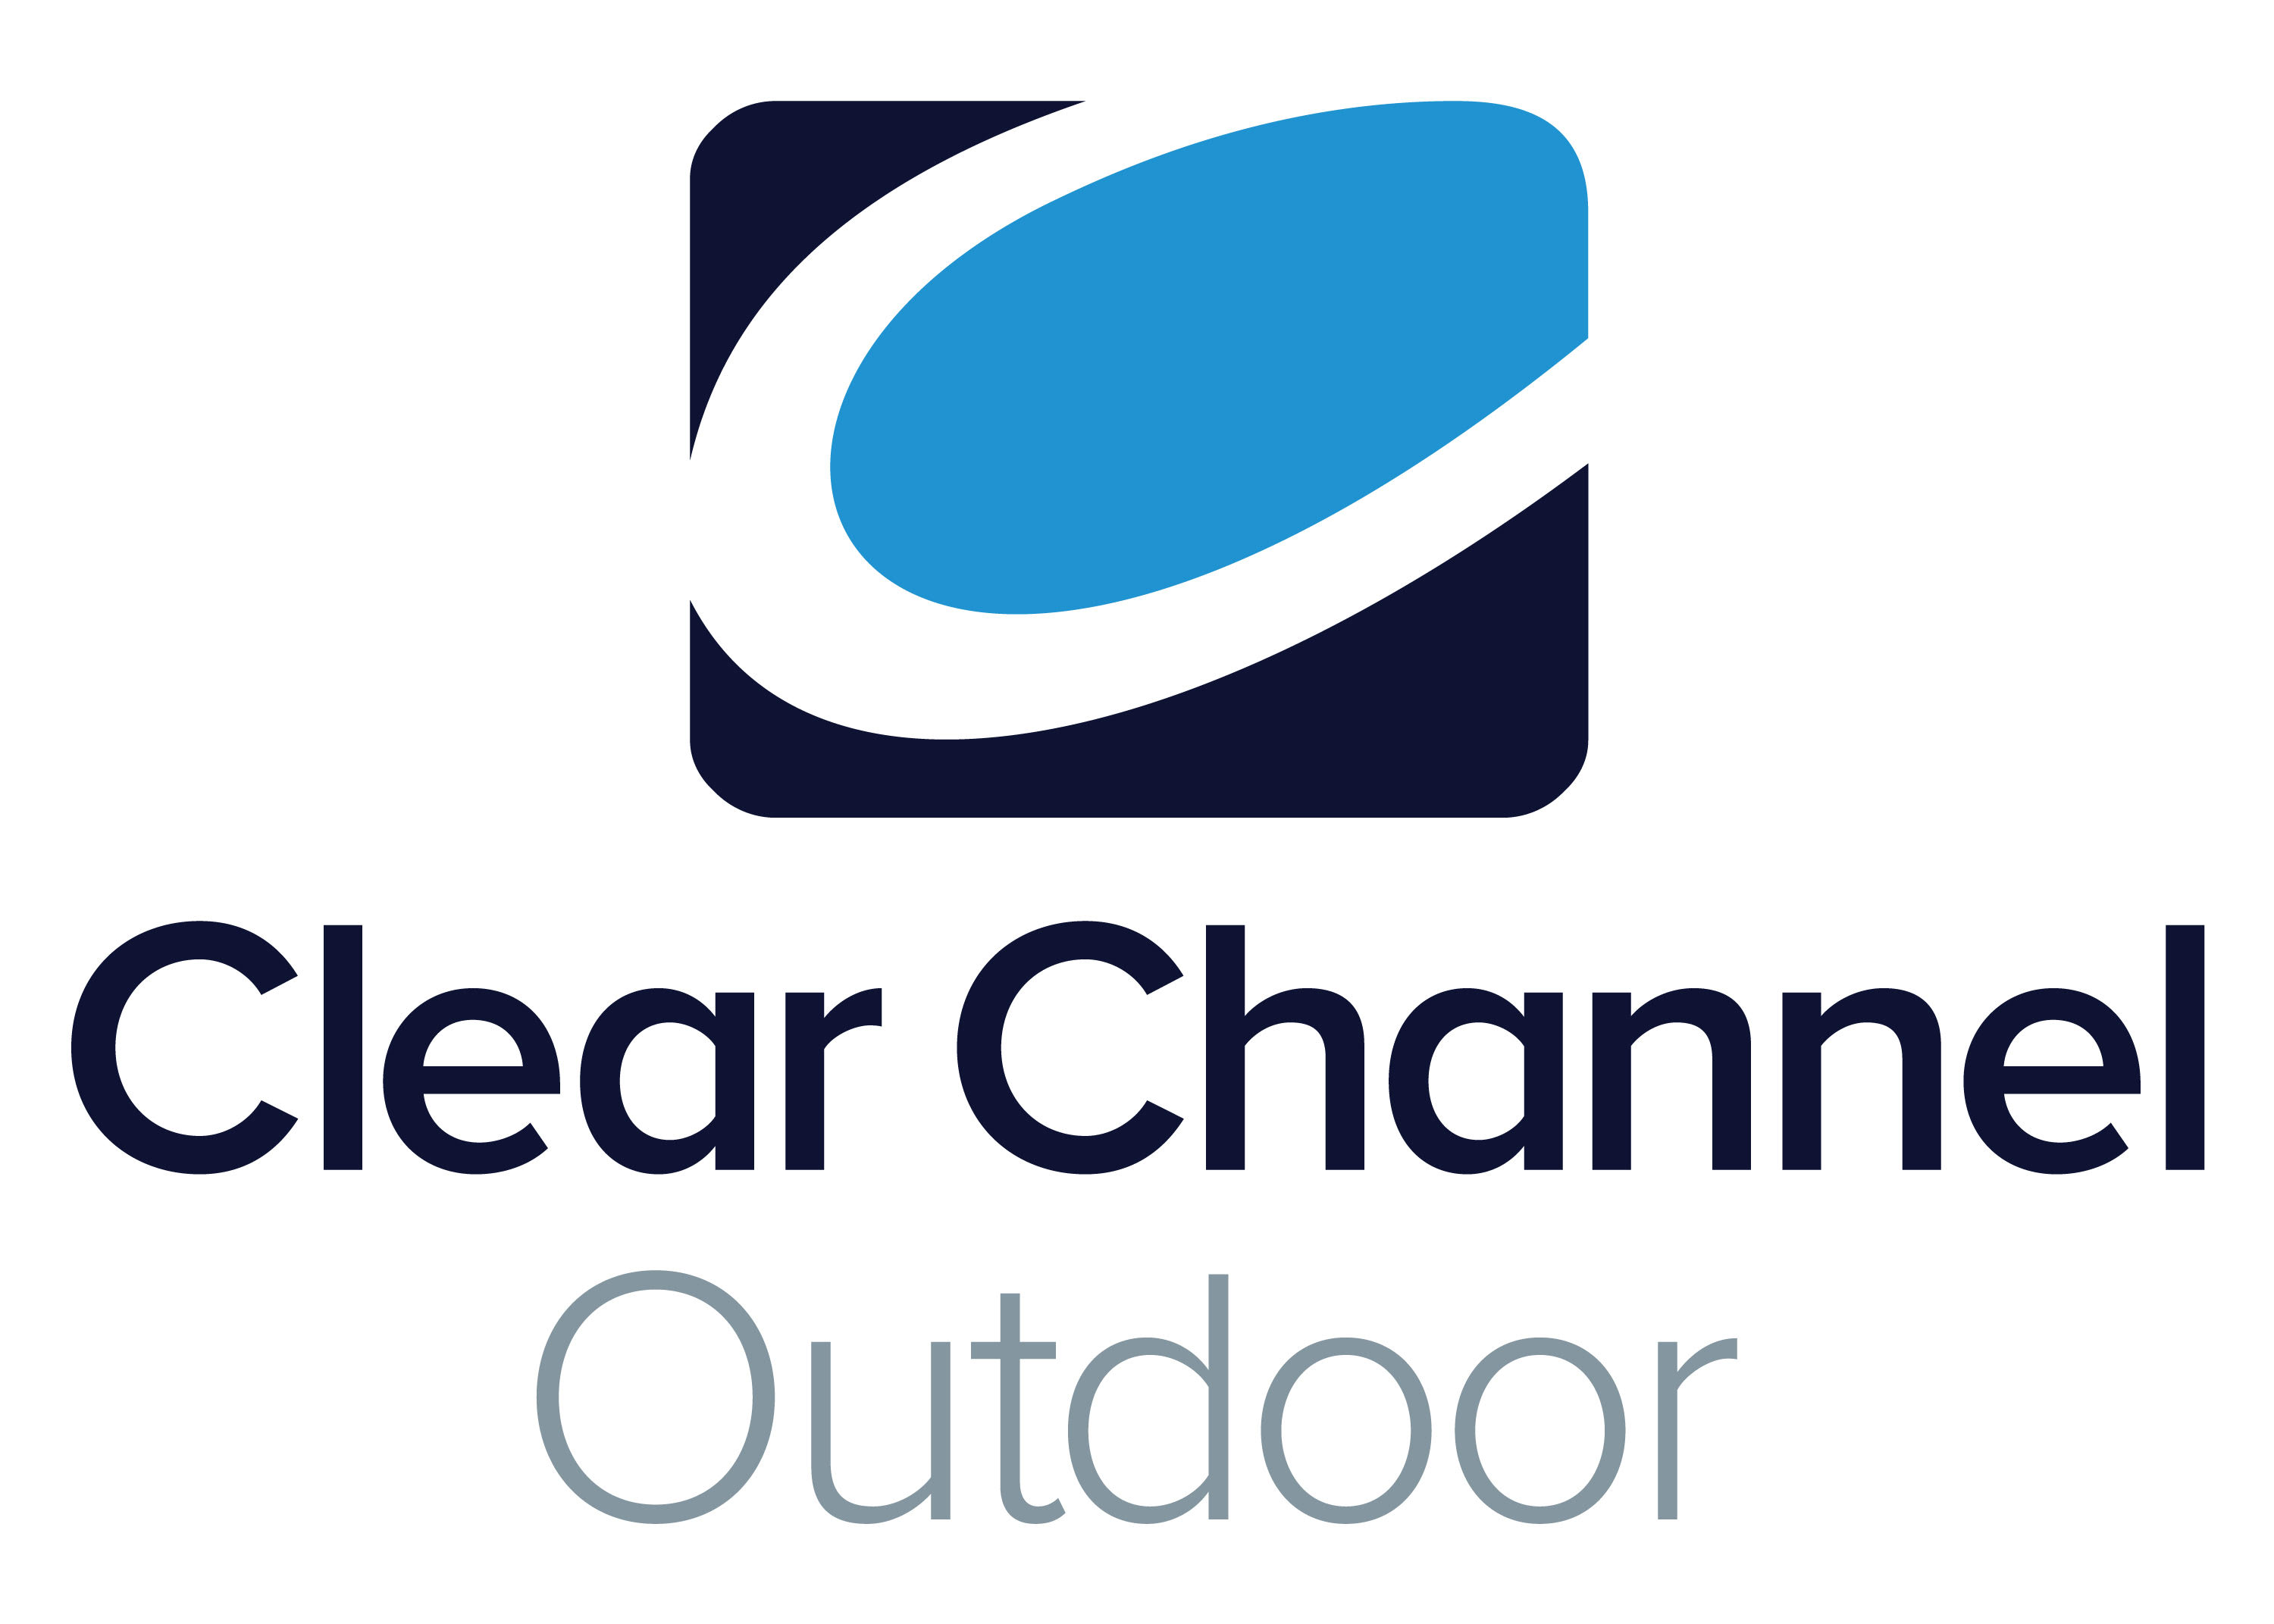 AAAAClear Channel Outdoor (Our 2020 Media Elite)